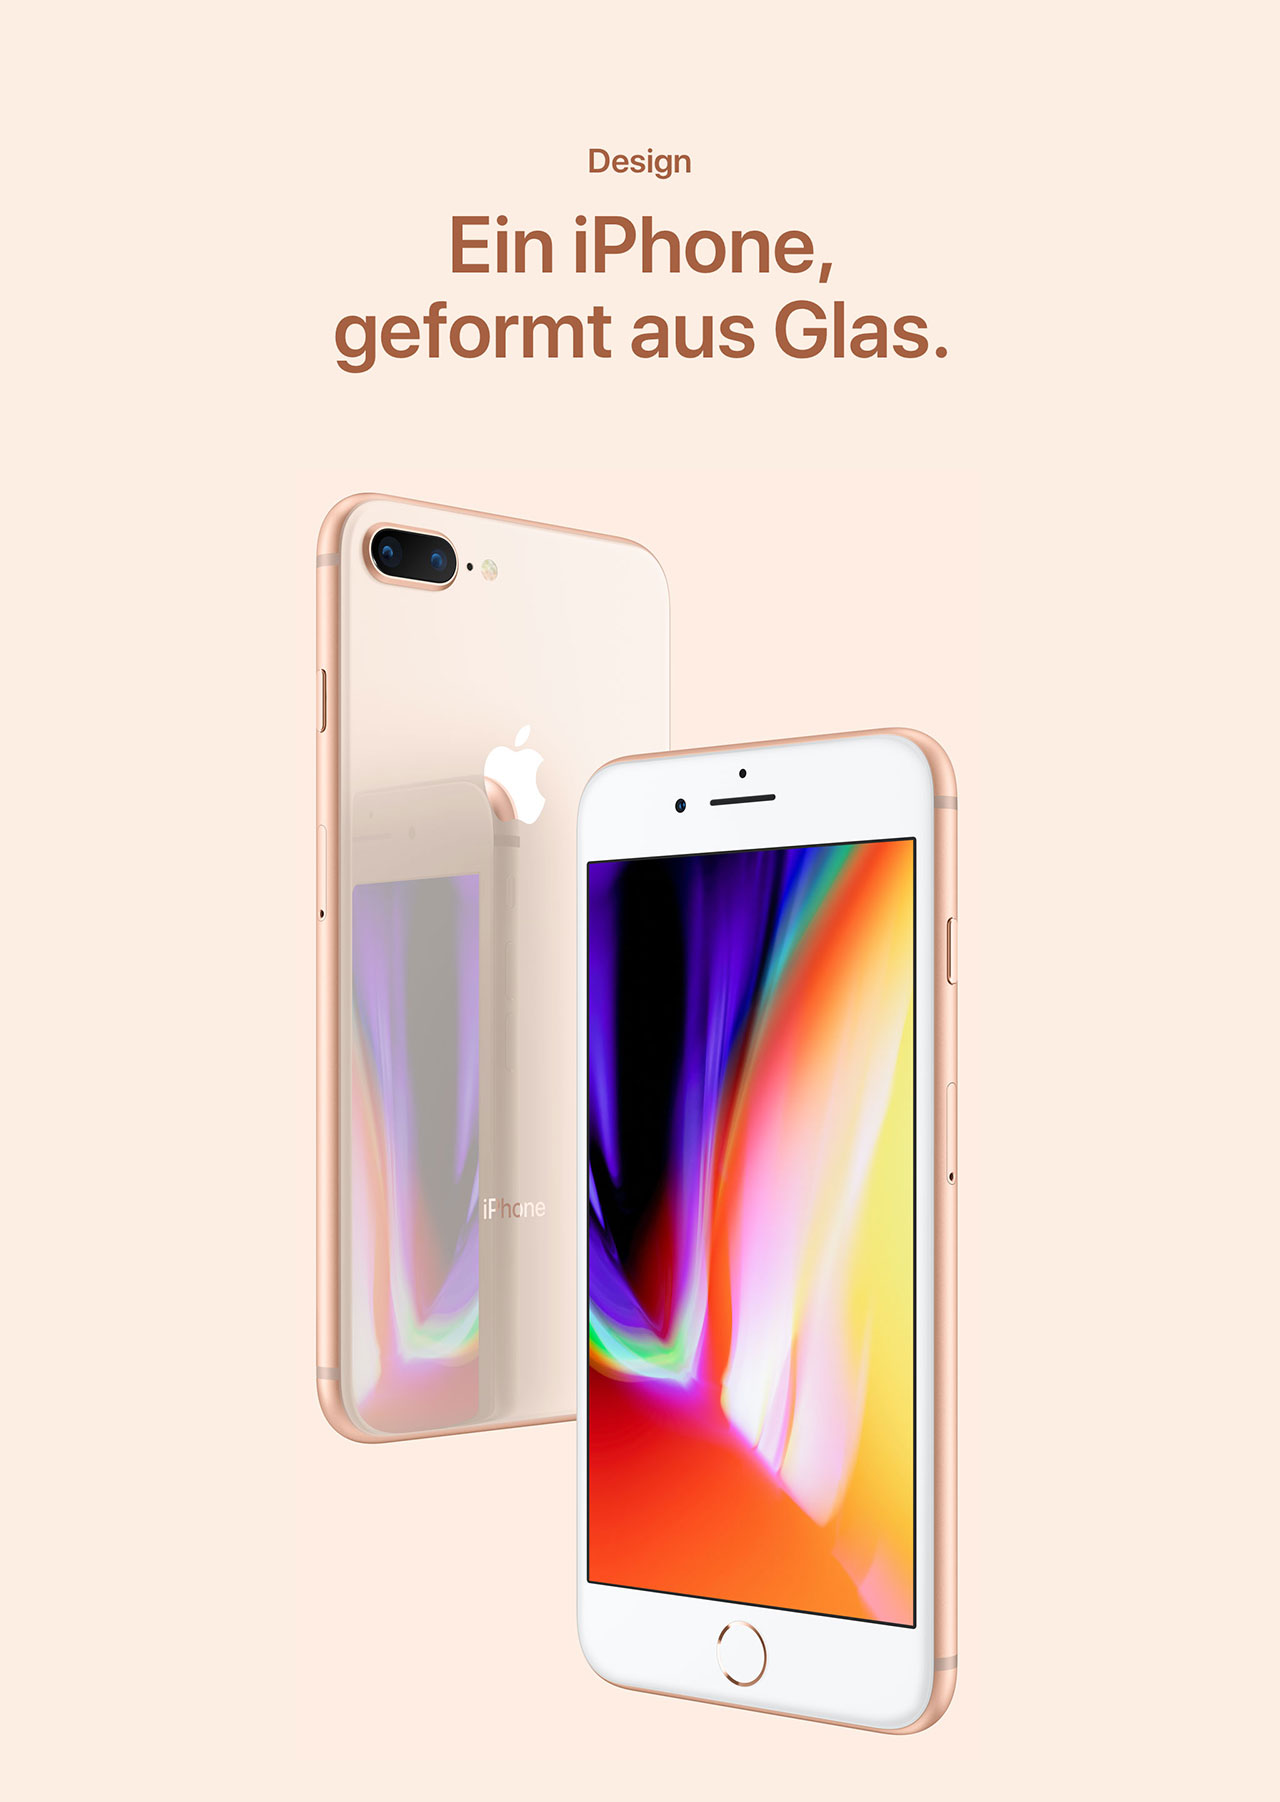 Iphone Bestellen Iphone 8 Und Iphone 8 Plus Jetzt Bestellen A1